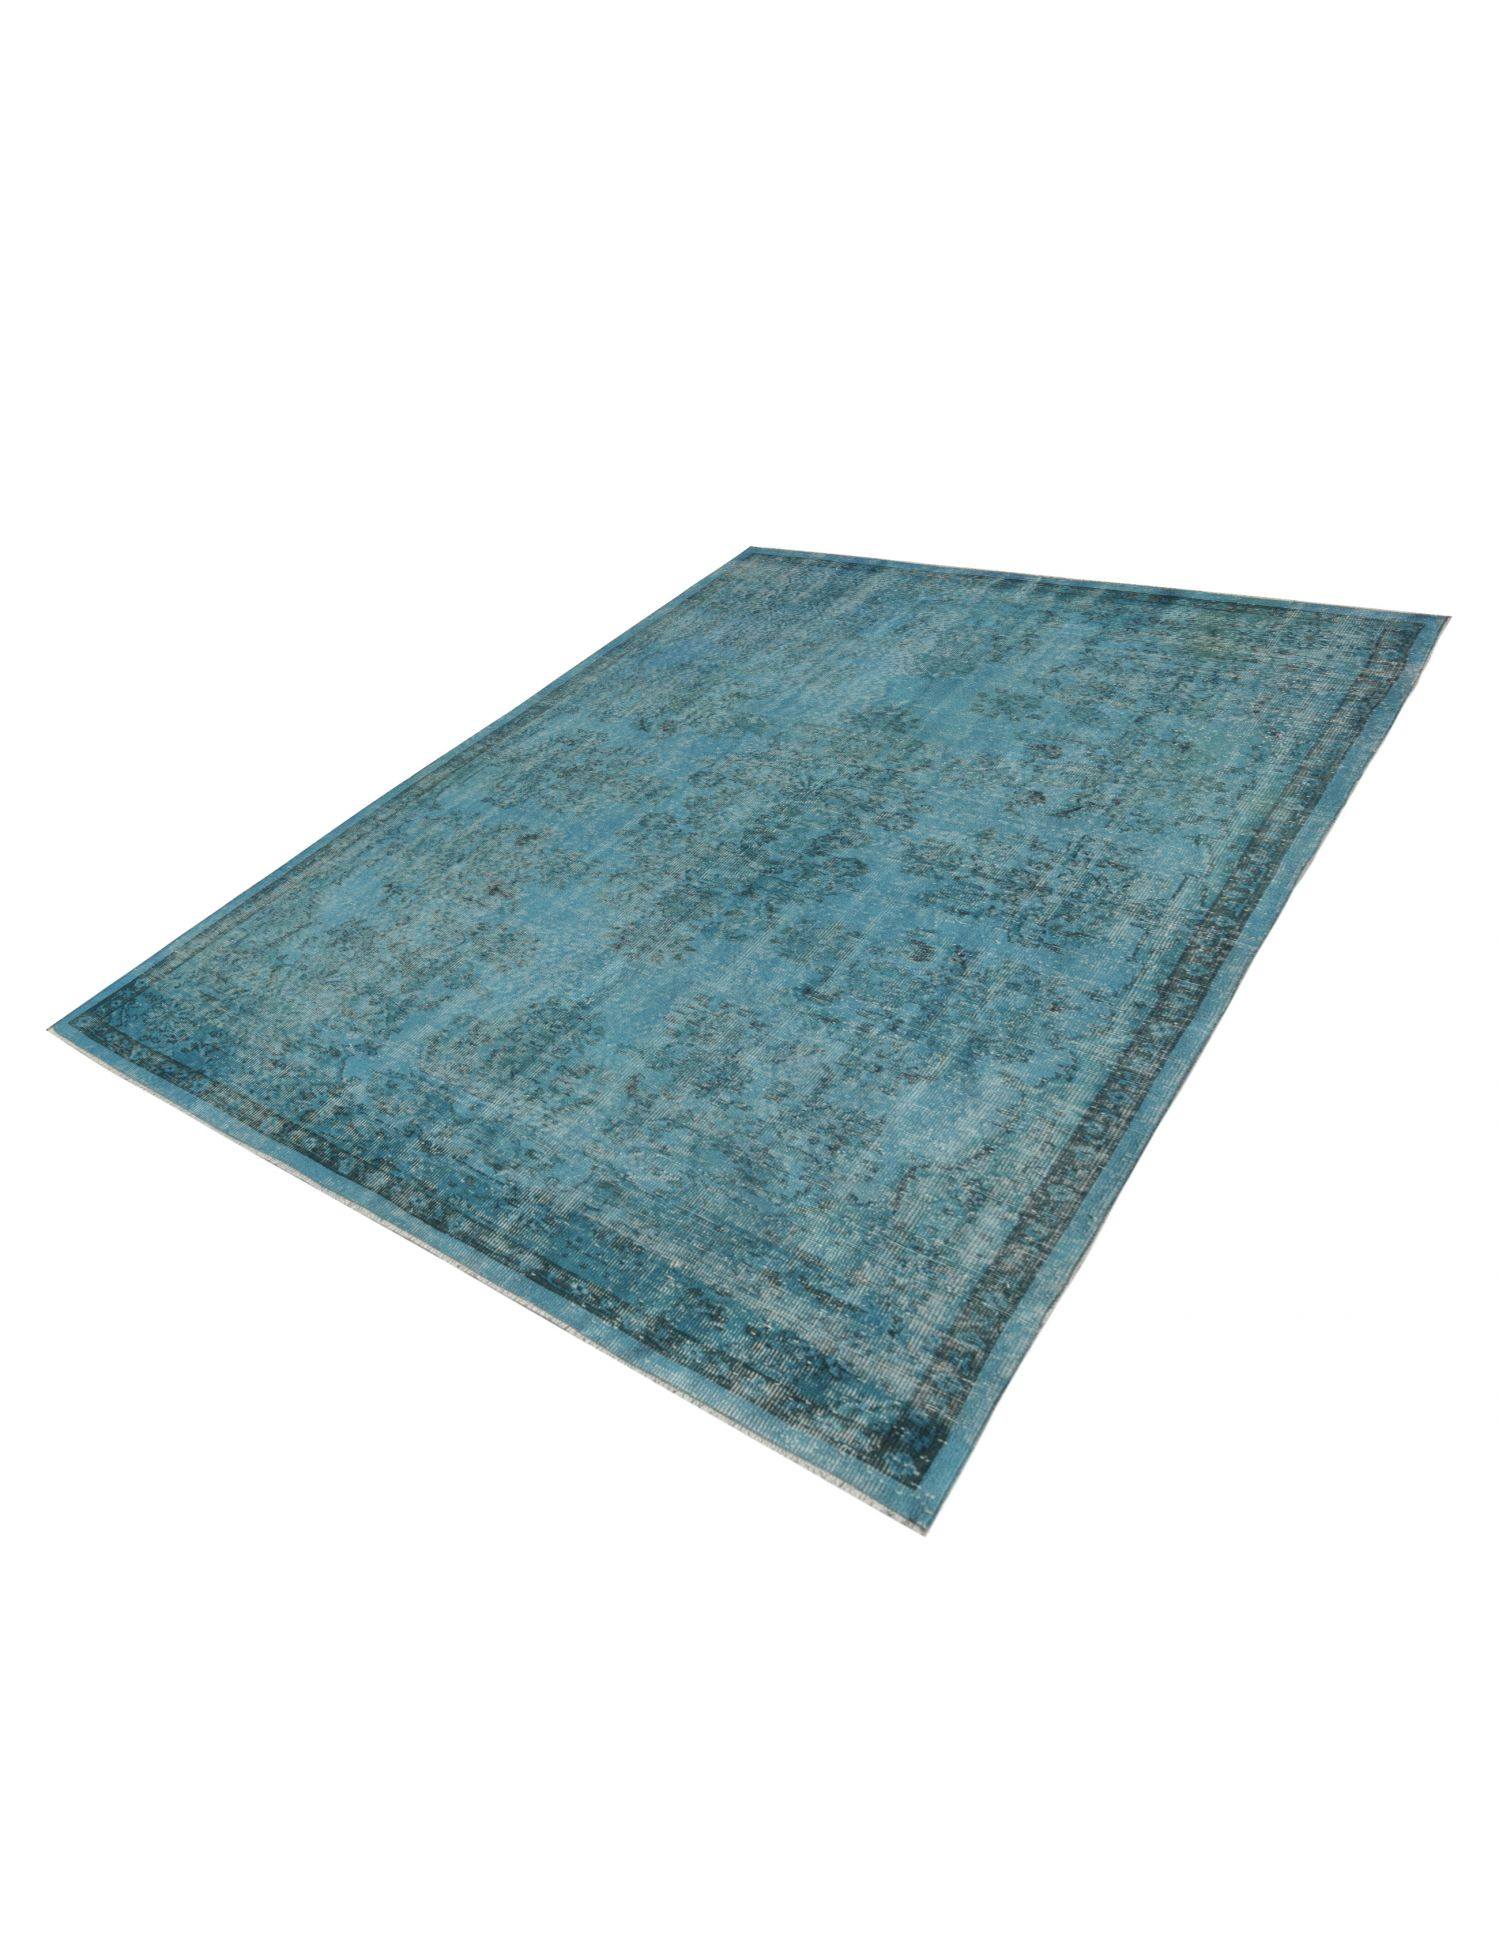 Vintage Carpet  blue <br/>284 x 175 cm